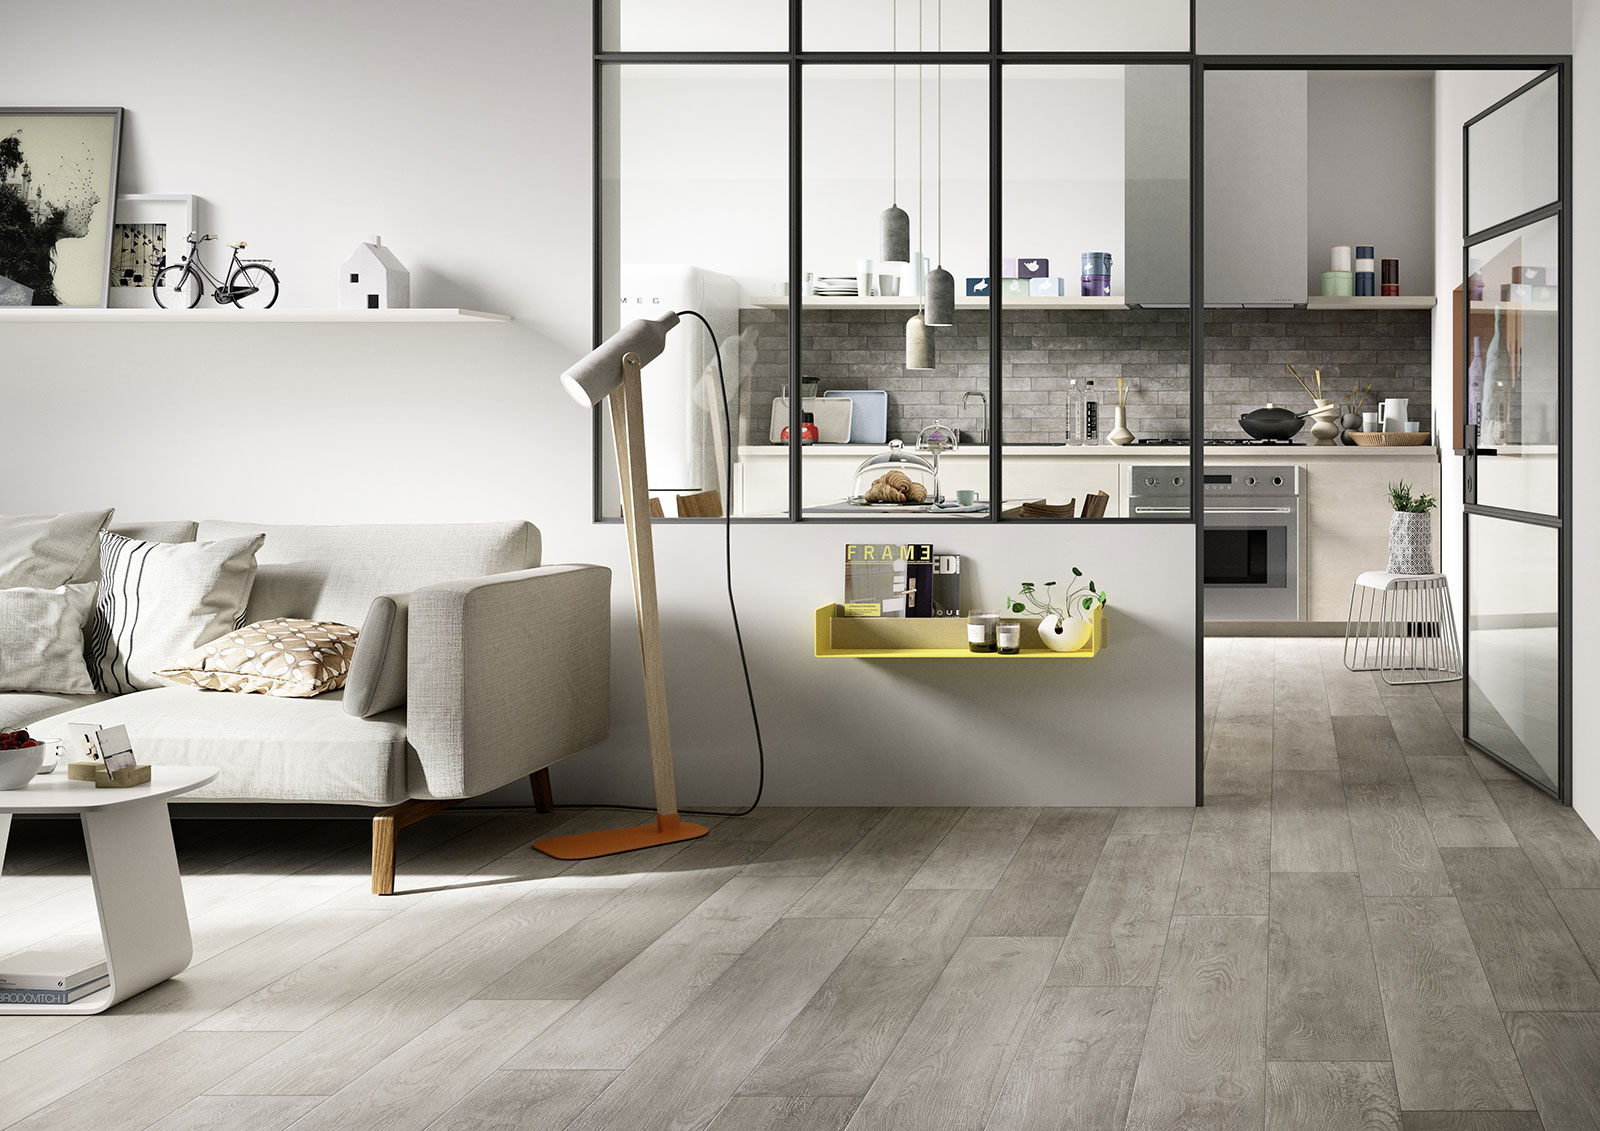 treverktime gr s effet bois pour carrelages marazzi. Black Bedroom Furniture Sets. Home Design Ideas